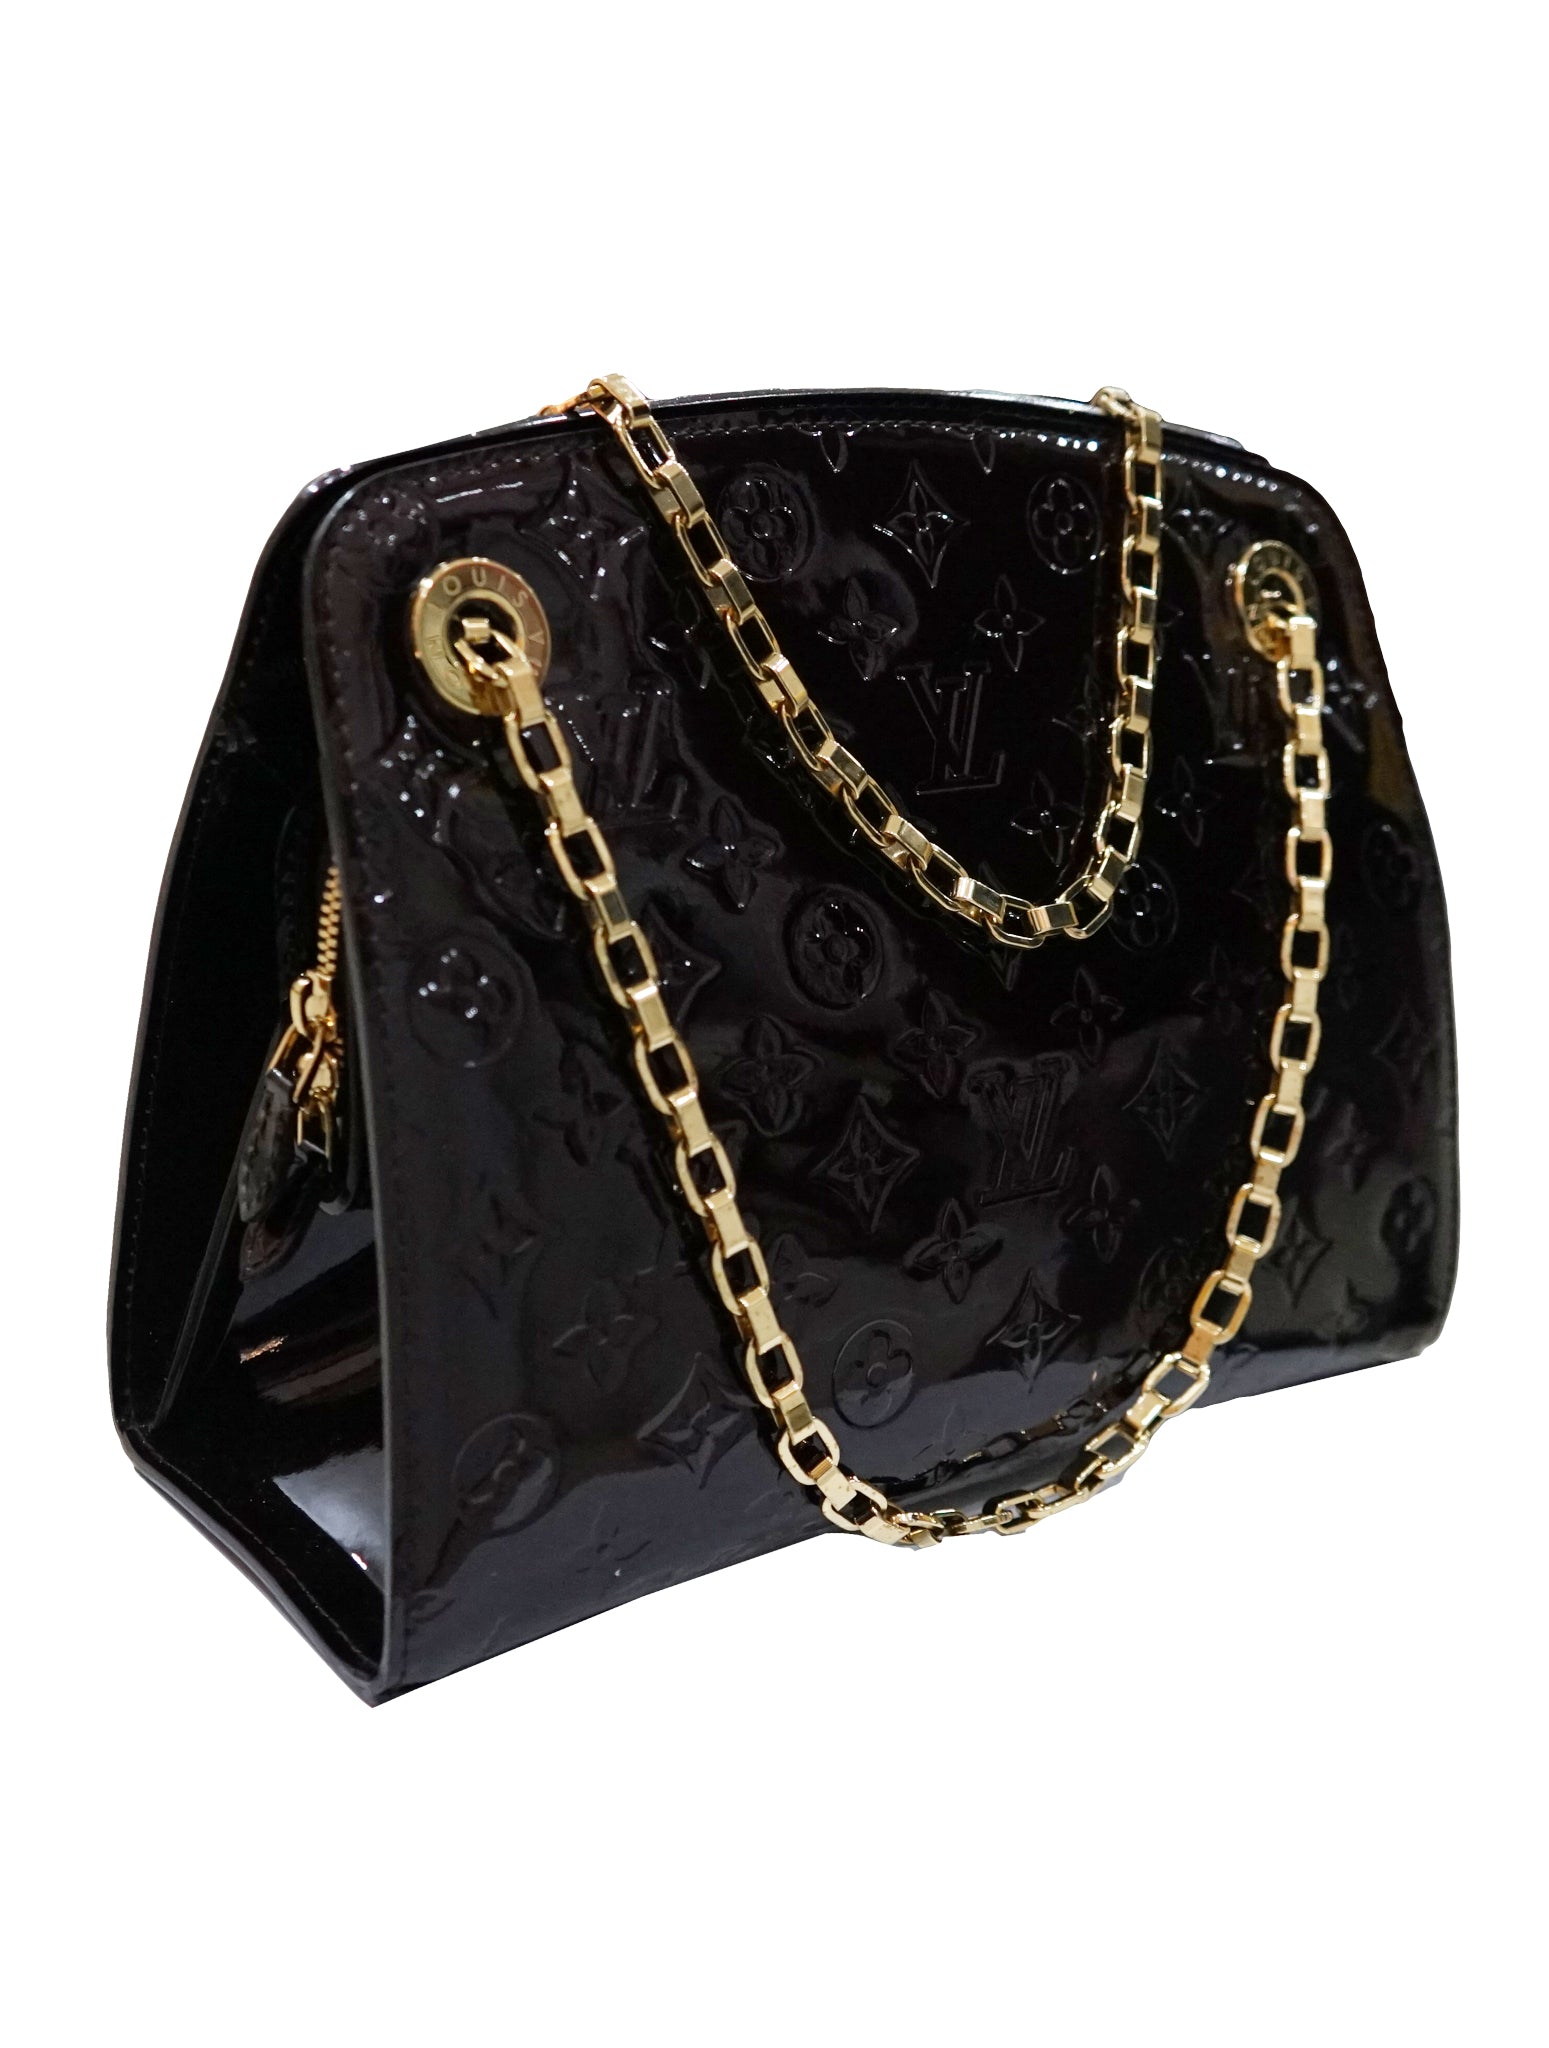 AMARANTE MONOGRAM VERNIS VIRGINIA BAG